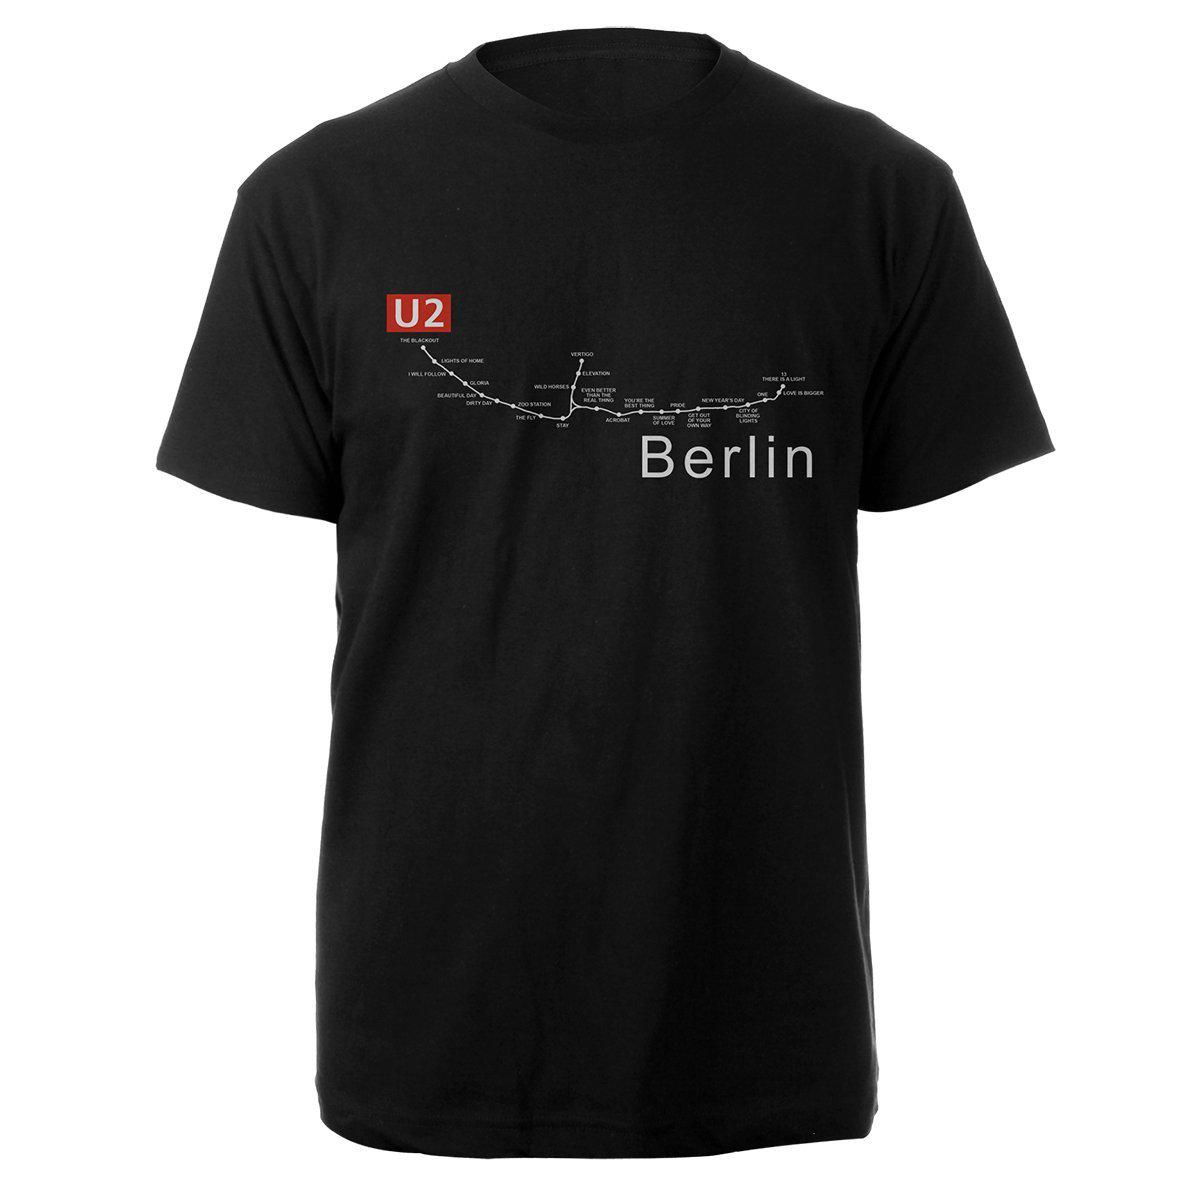 U2 Experience Live In Berlin Black T-shirt